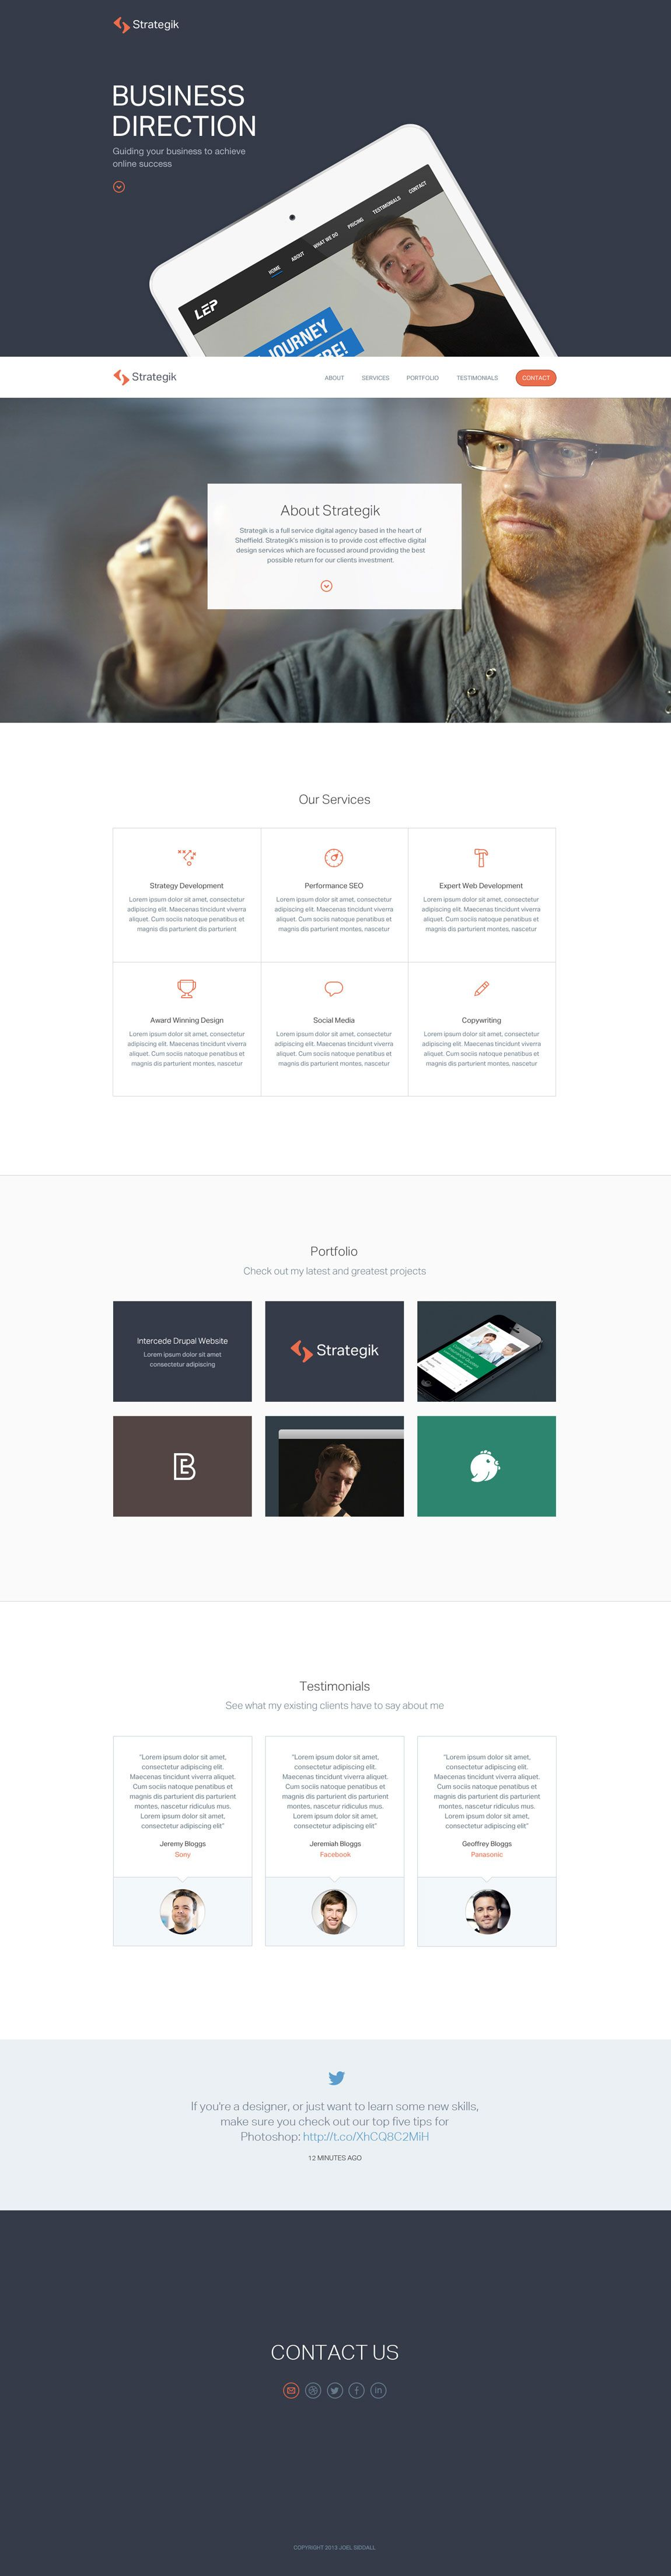 Clean Flat And Responsive One Page Portfolio For Digital Agency Strategik From Sheffield With A Dribbble Feed Fo Flat Web Design Interactive Design Web Design